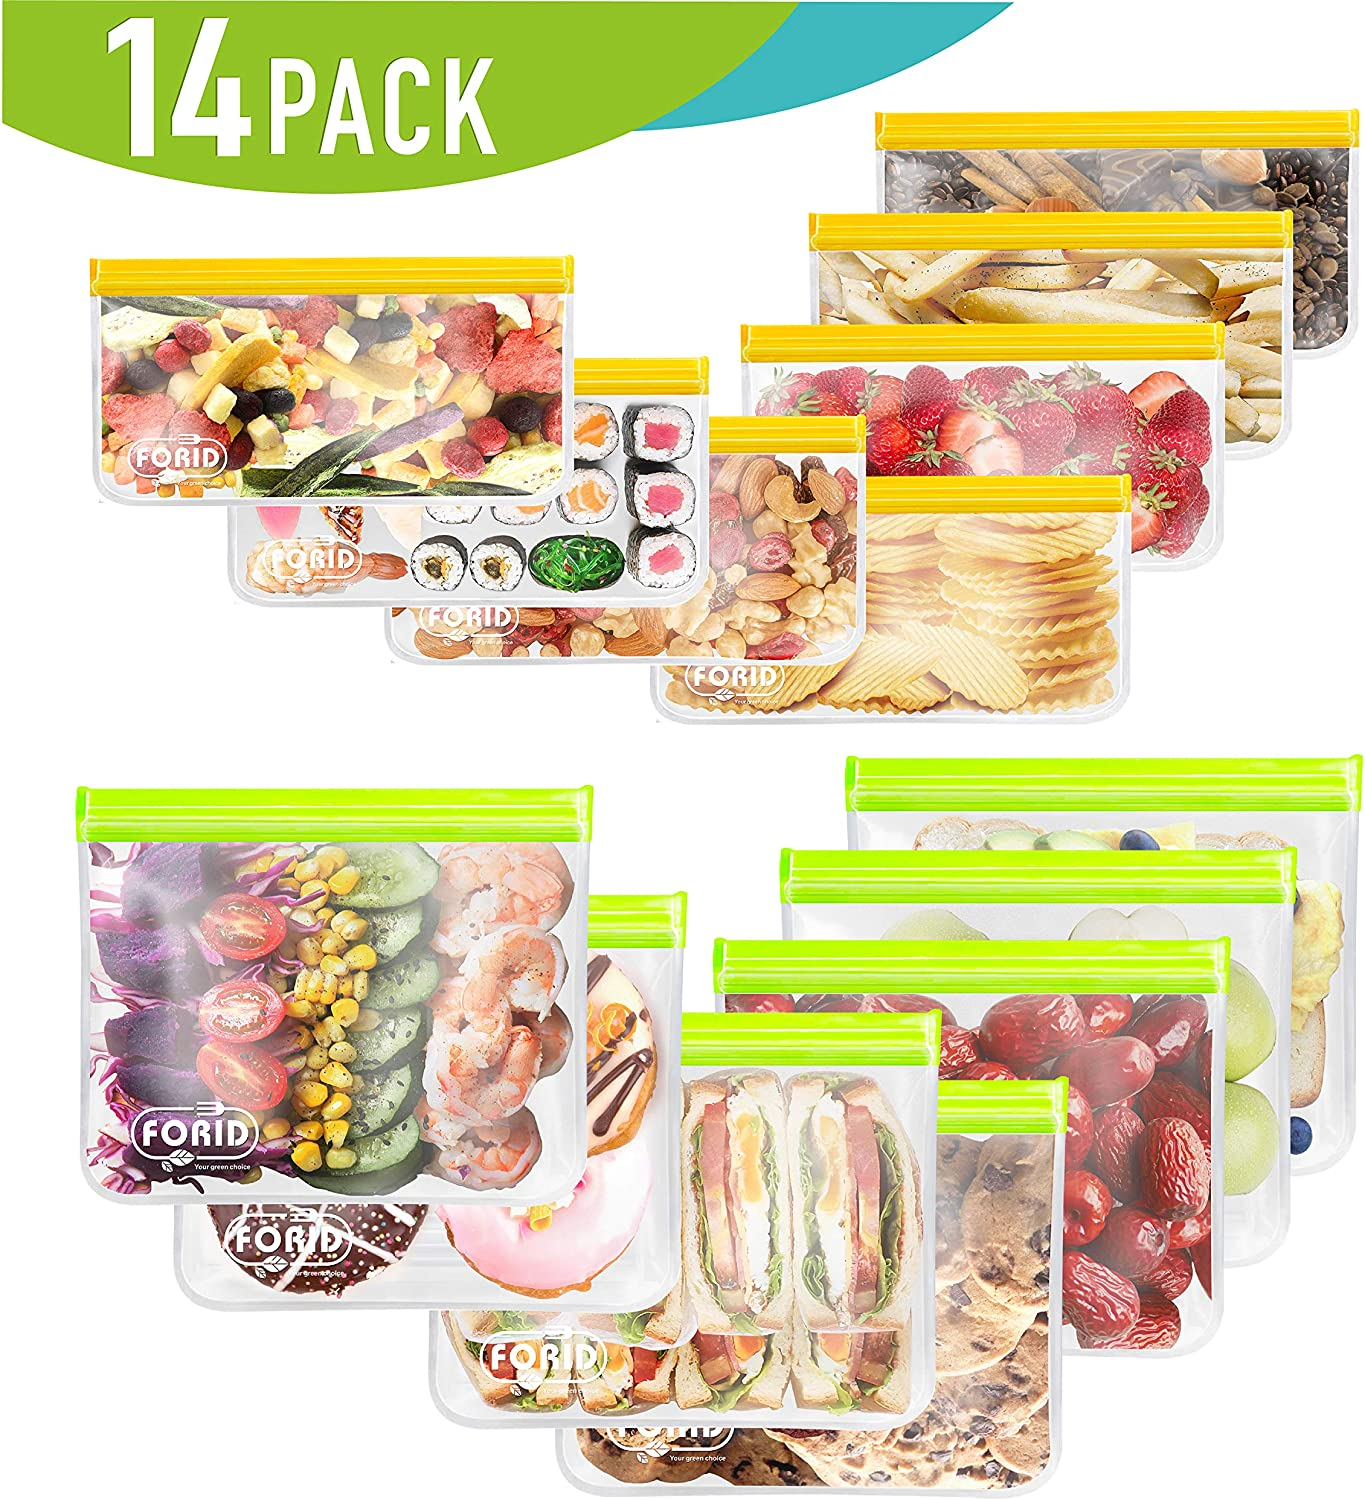 Reusable Storage Bags - 14 Pack EXTRA THICK Ziplock bags (7 Reusable Sandwich Bags & 7 Reusable Snack Bags) FDA Grade Food Freezer Bags LEAKPROOF Lunch Bag Silicone Plastic and BPA Free